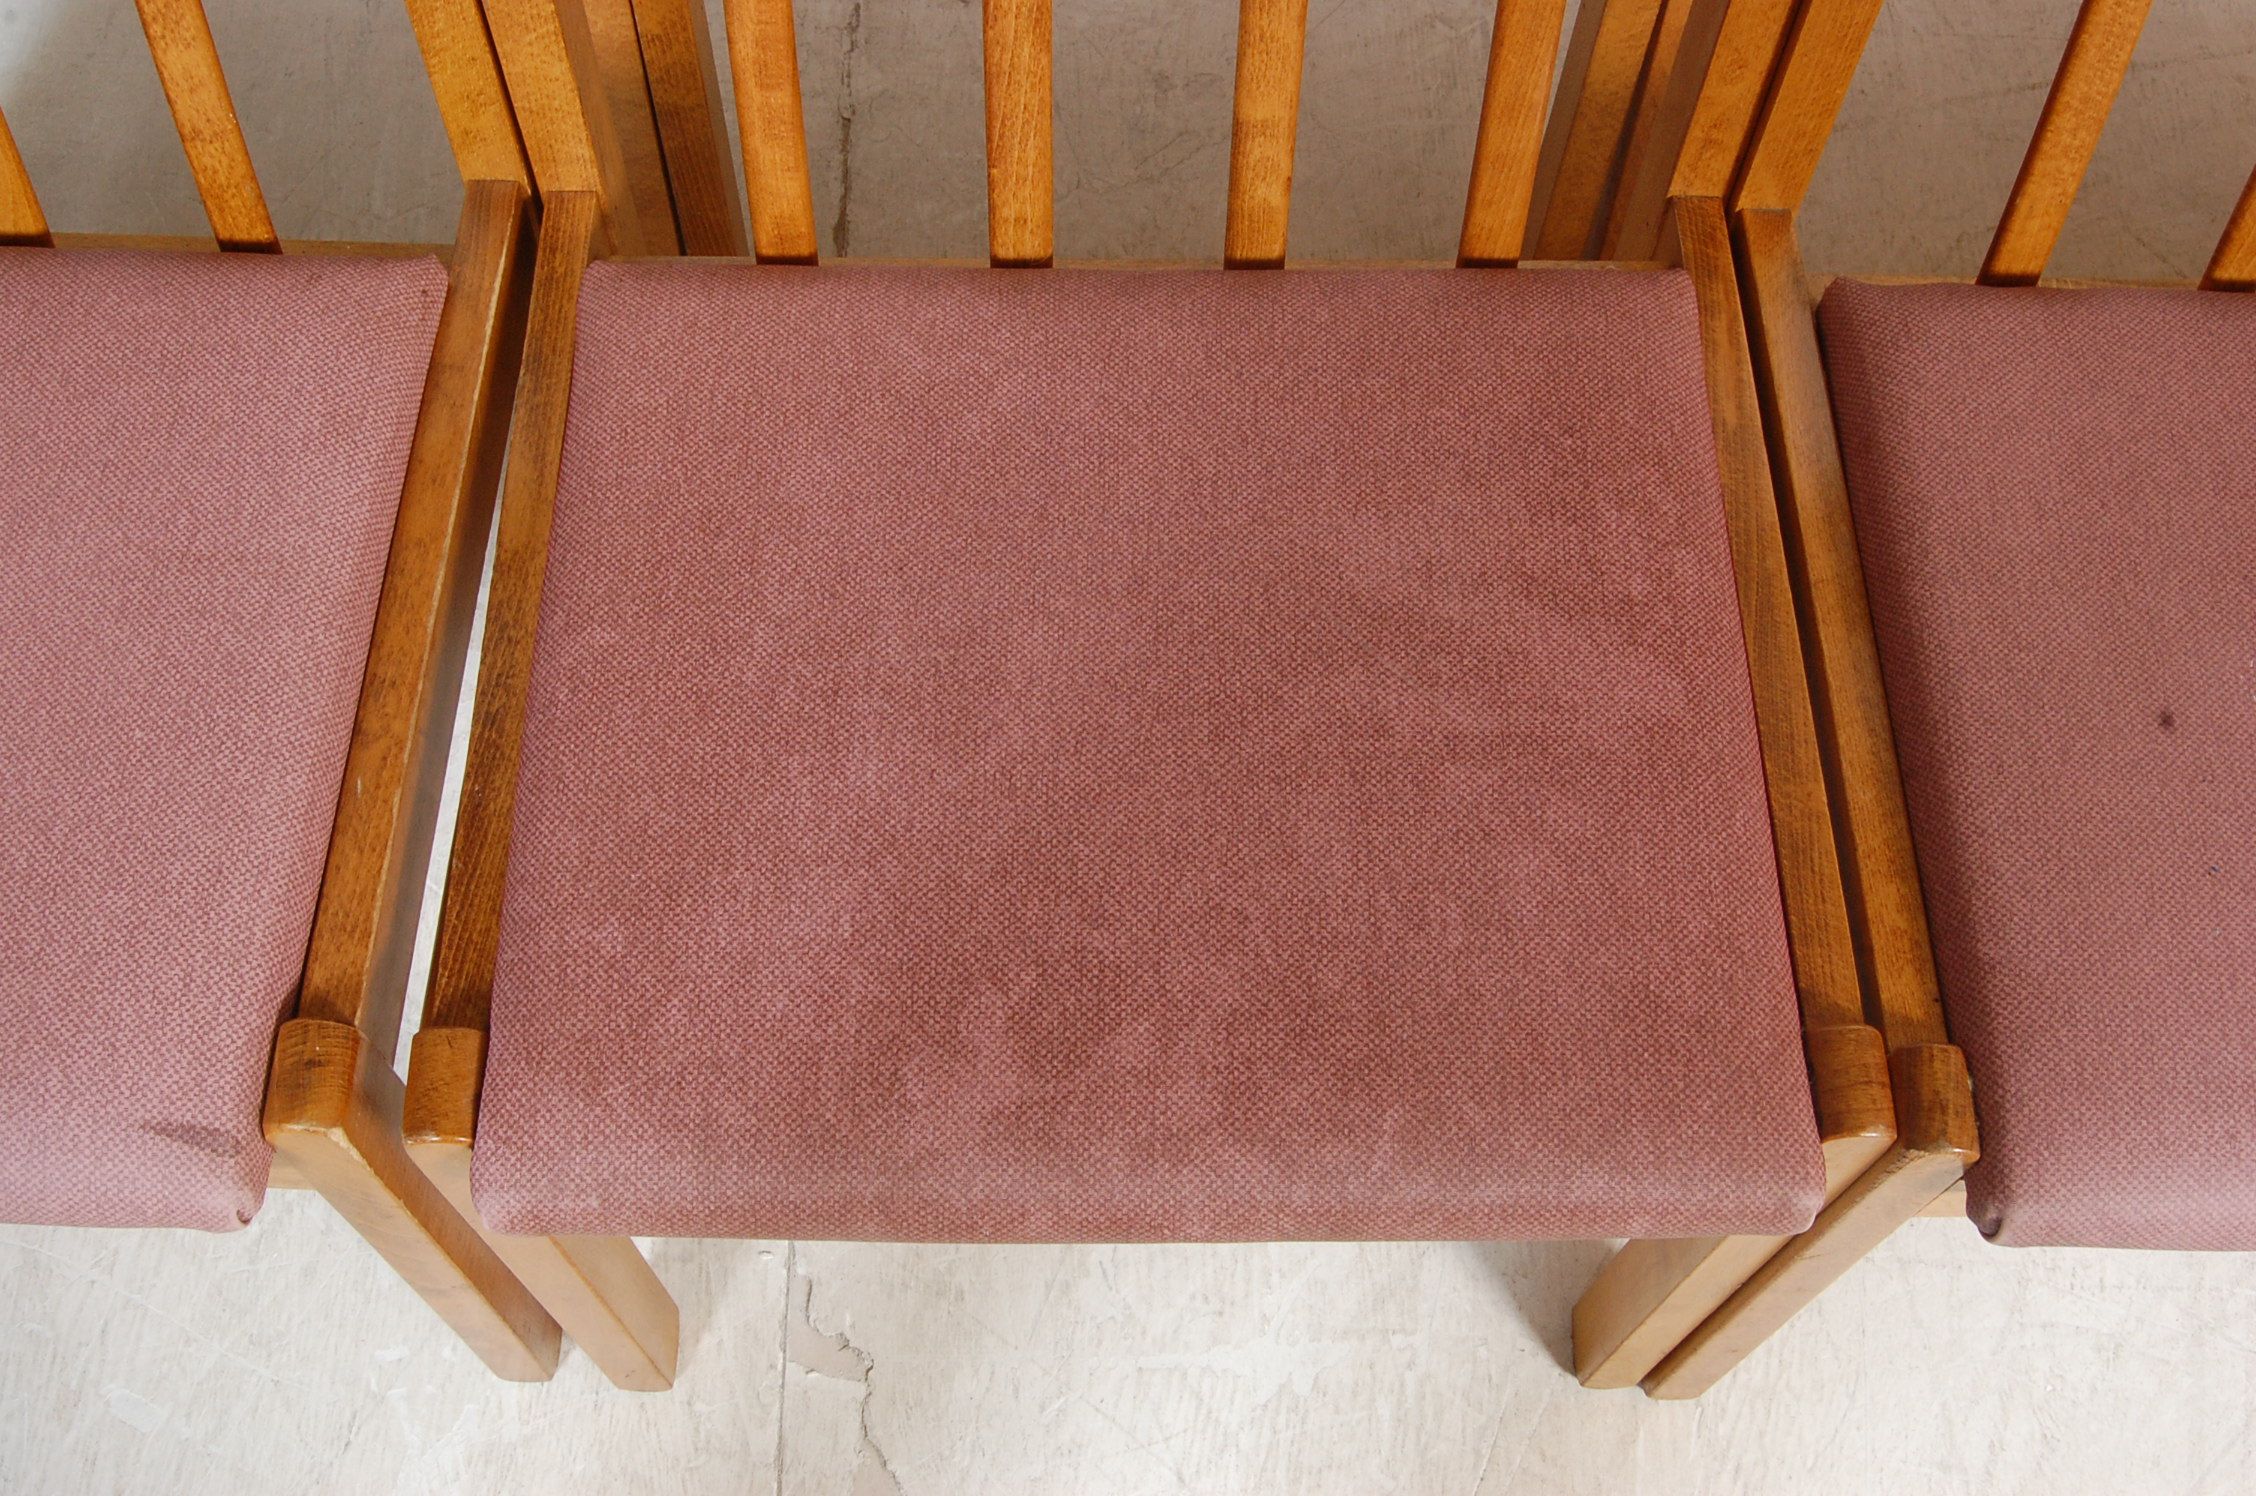 EIGHT VINTAGE GOLDEN OAK DINING CHAIRS - Image 4 of 8